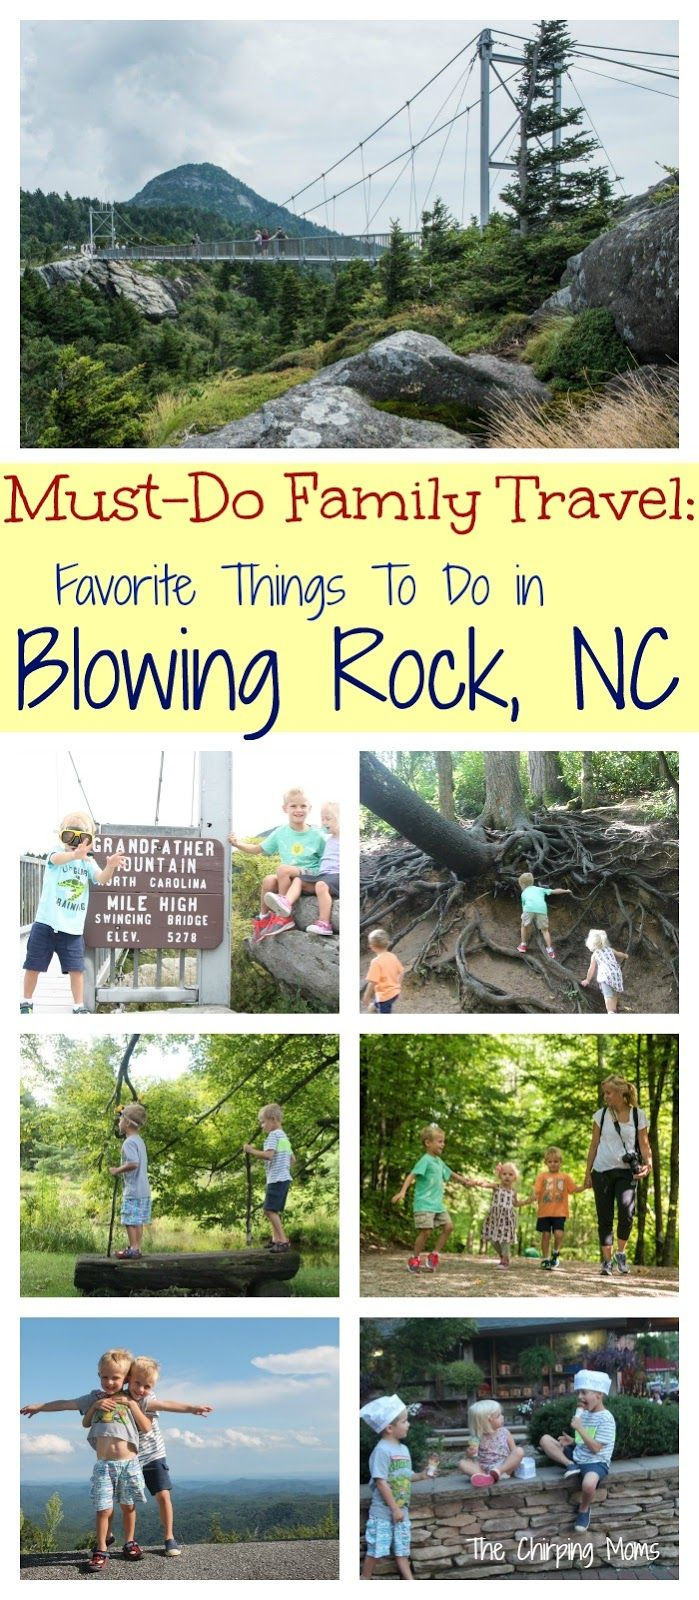 Family Travel: Blowing Rock, NC - The Chirping Moms